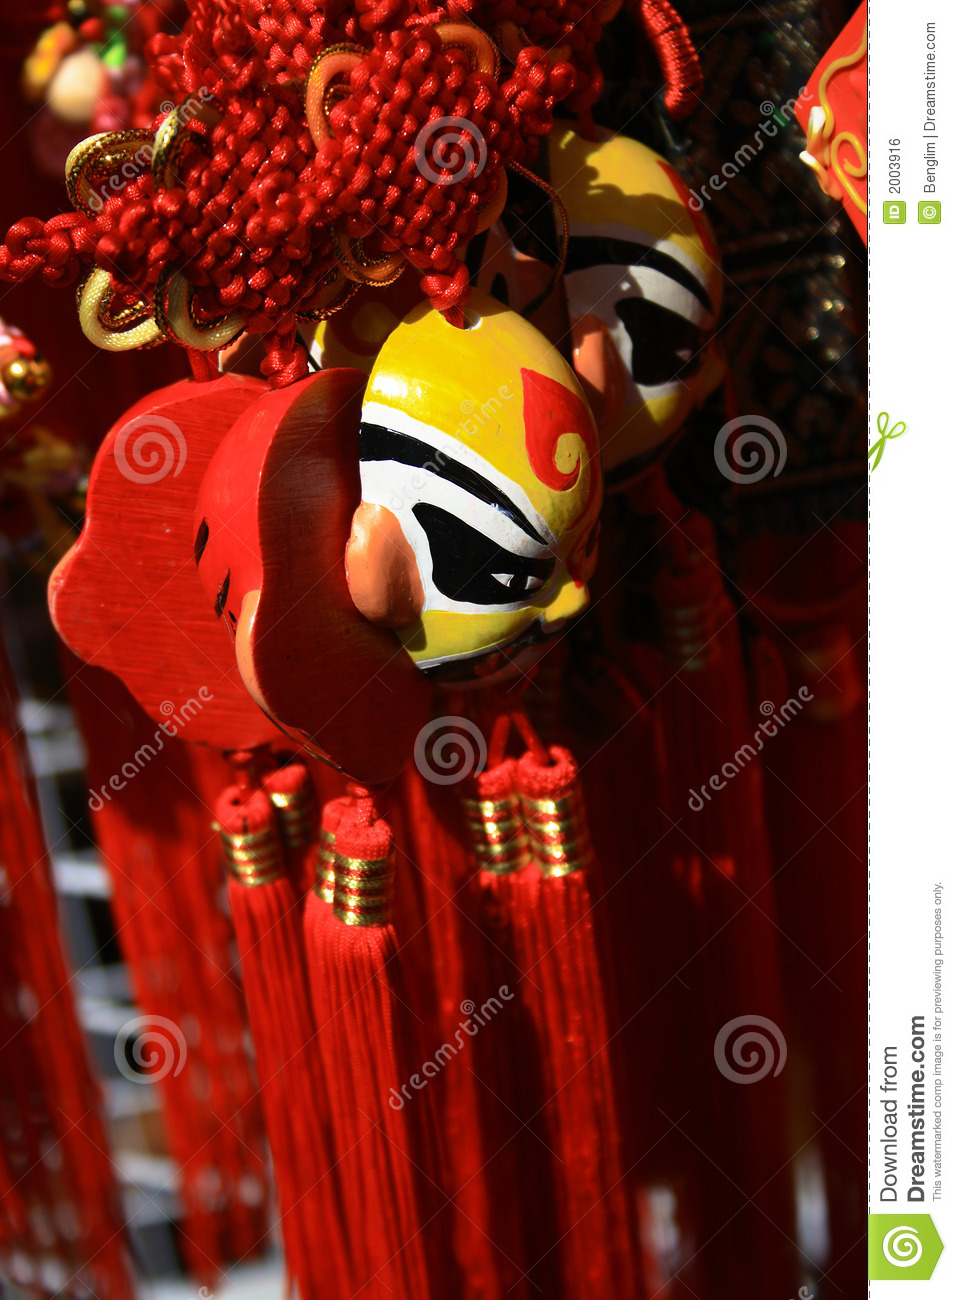 Lunar new year decoration royalty free stock image image - Lunar new year decorations ...